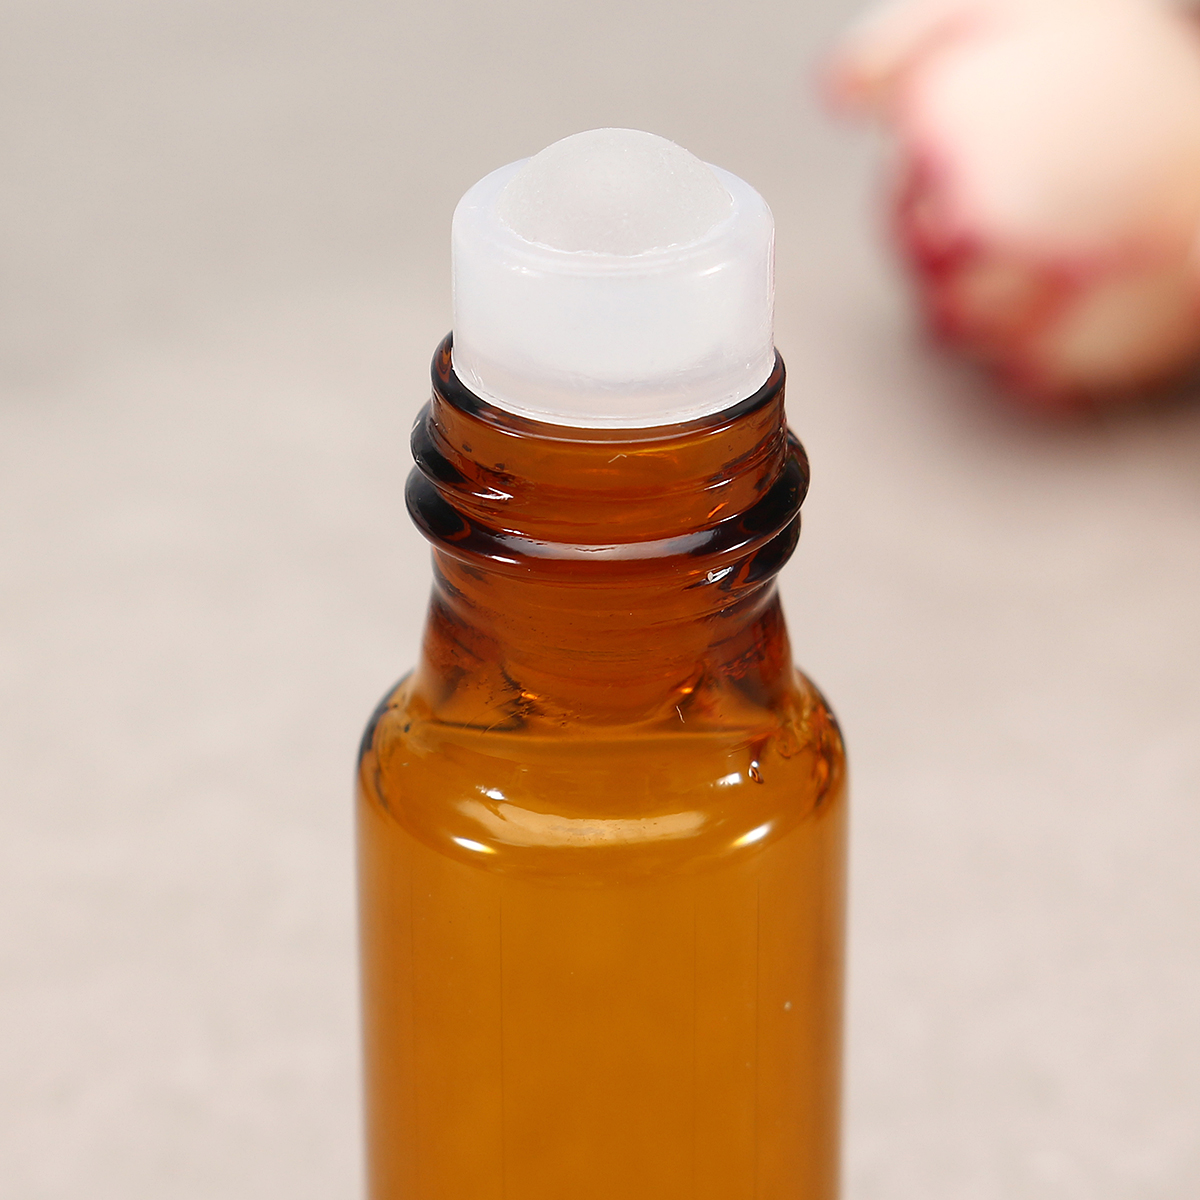 10pcs 5ml Amber Roll On Bottles Portable Essential Oils Liquid Perfume Container With Pendant